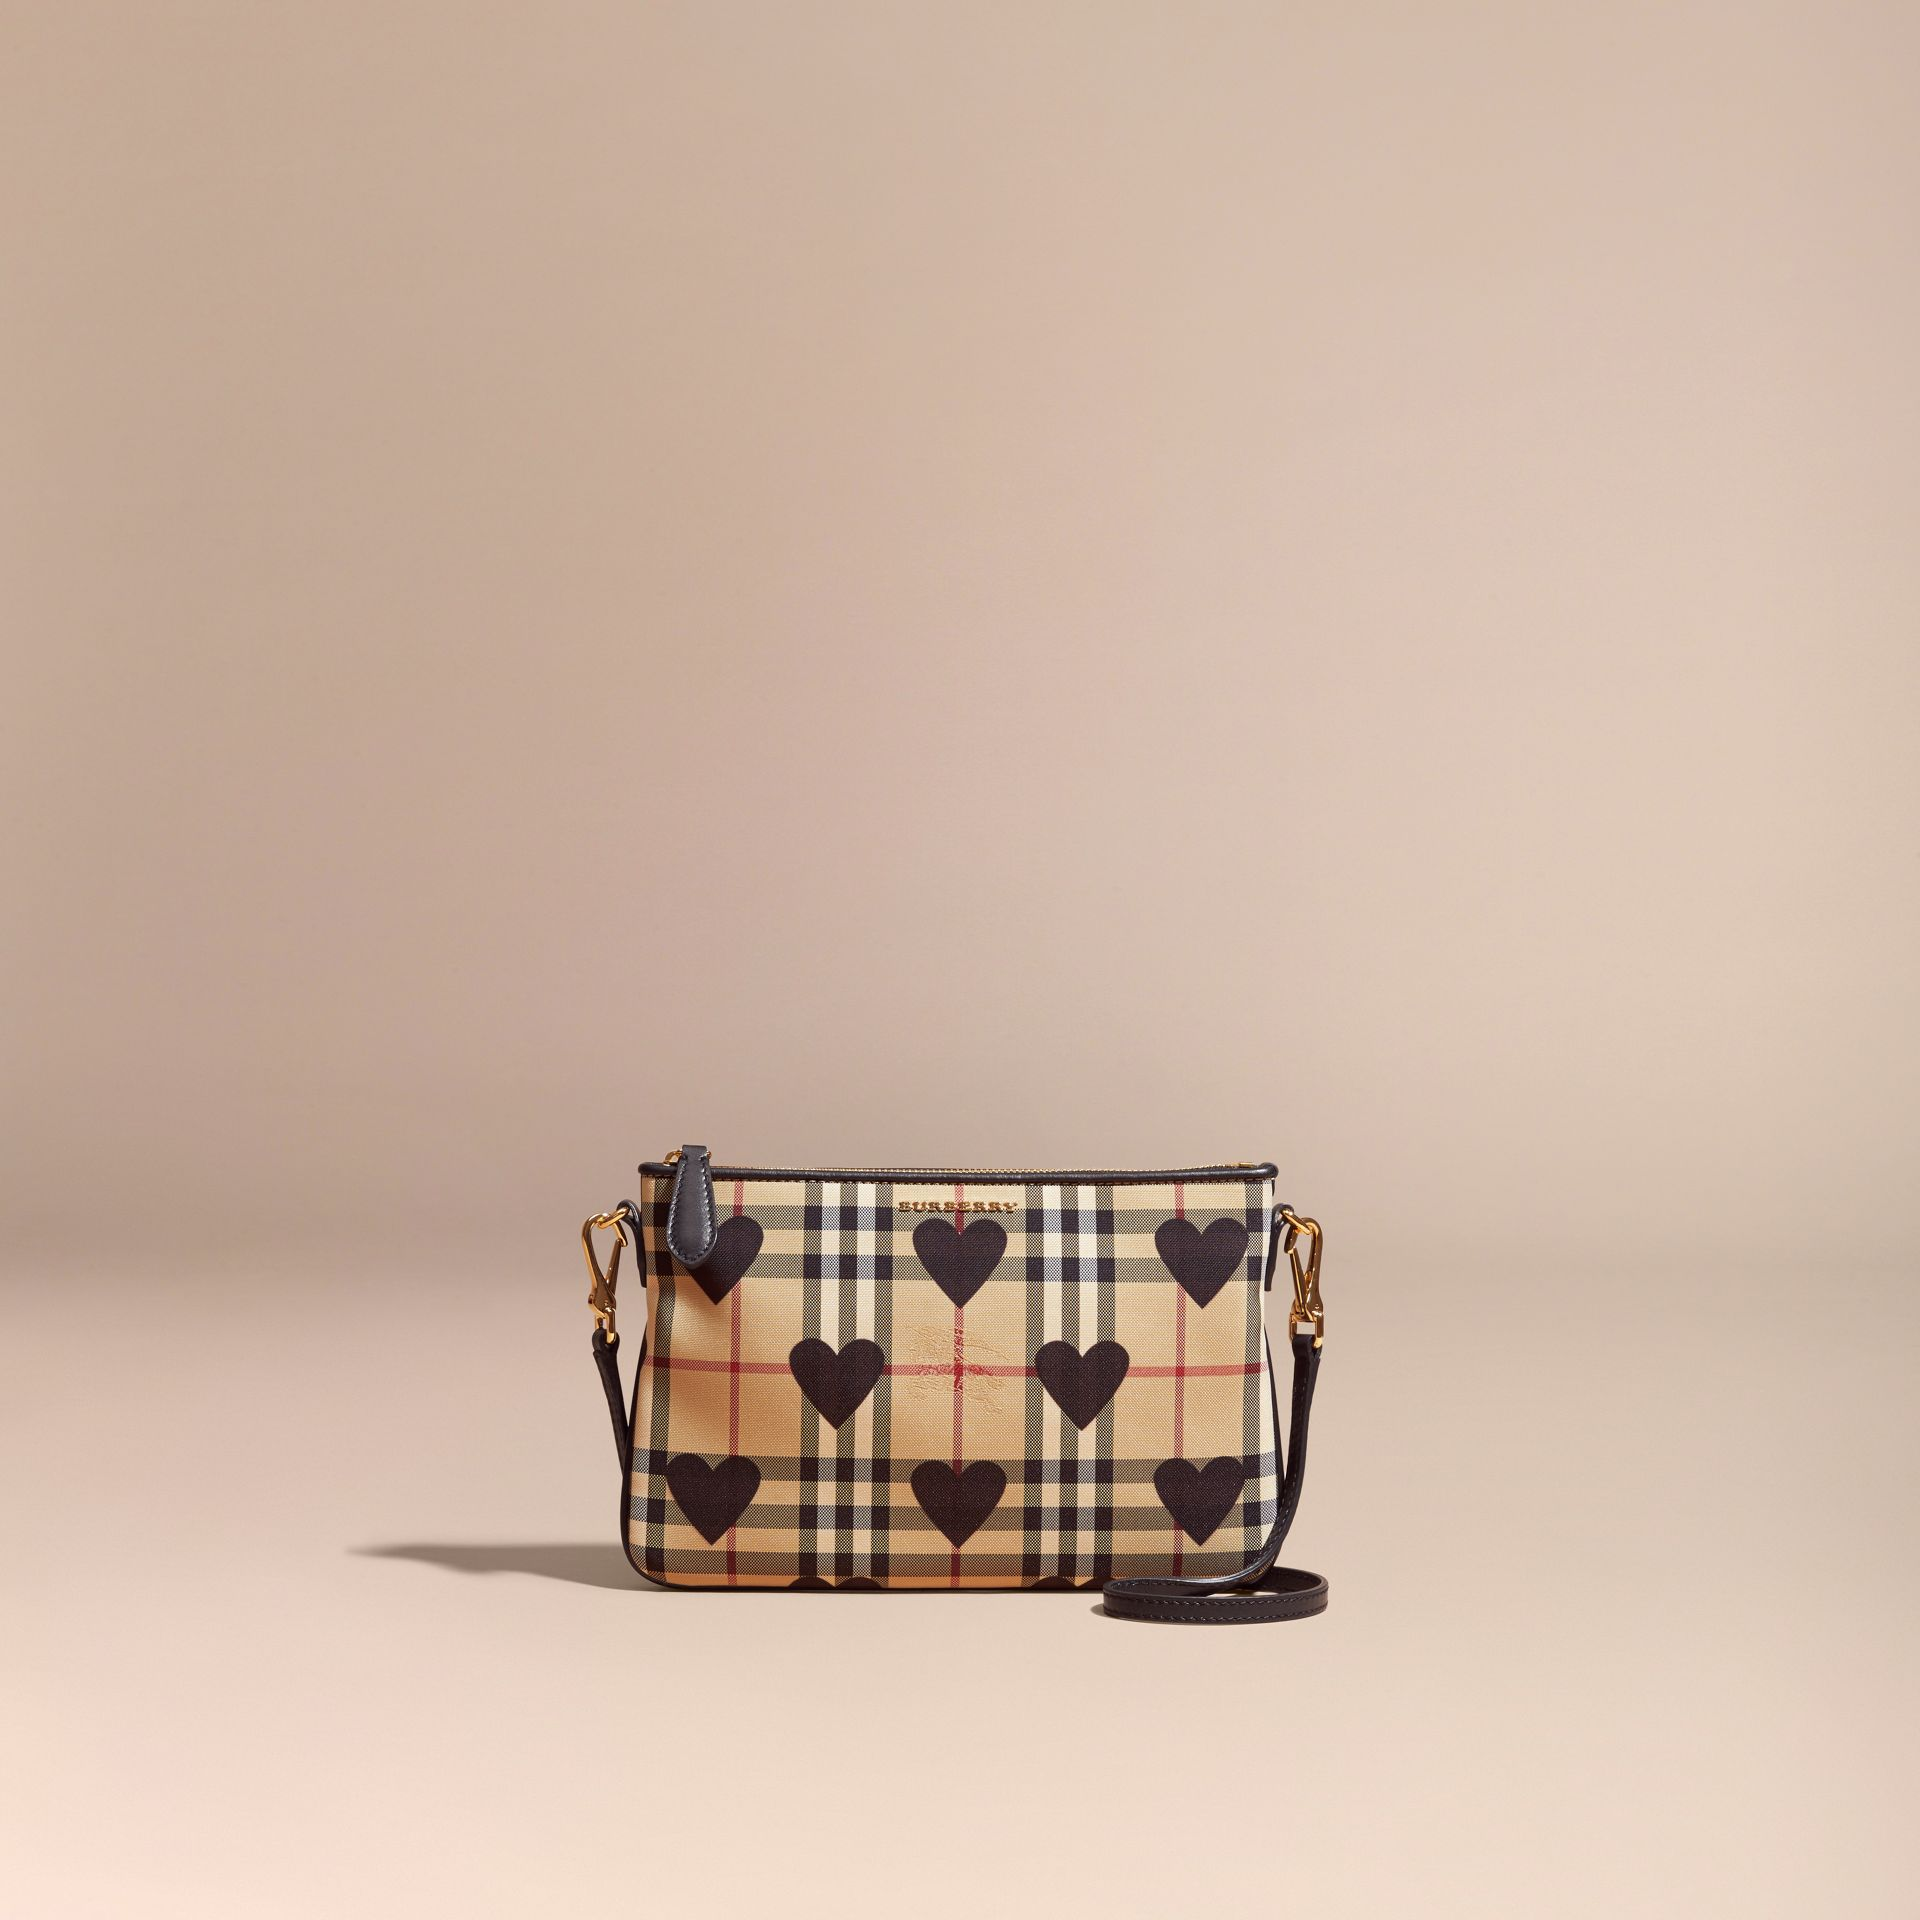 Black Heart Print Check and Leather Clutch Bag Black - gallery image 9